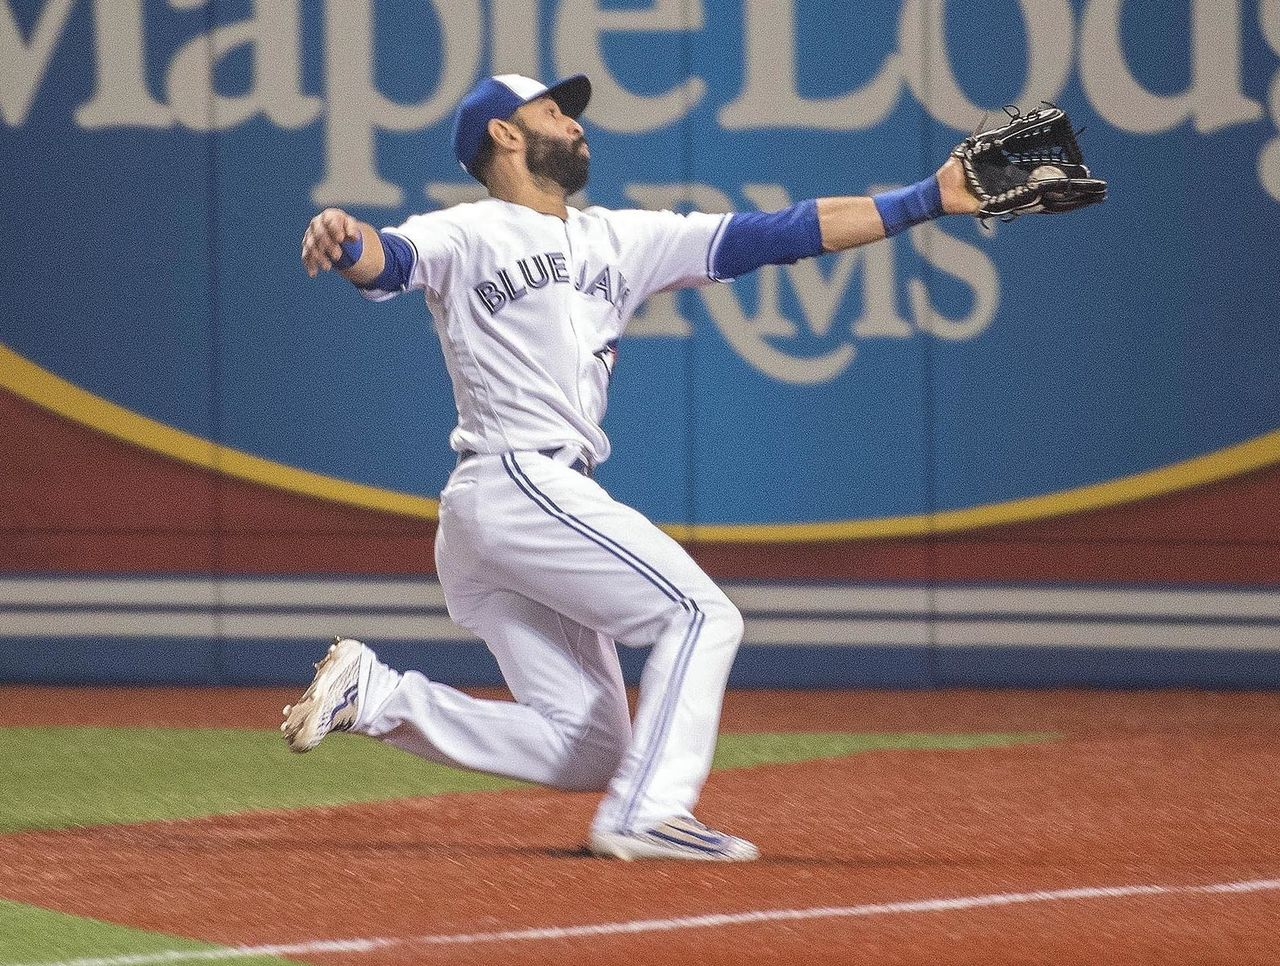 Cropped 2017 09 20t000553z 24274931 nocid rtrmadp 3 mlb kansas city royals at toronto blue jays